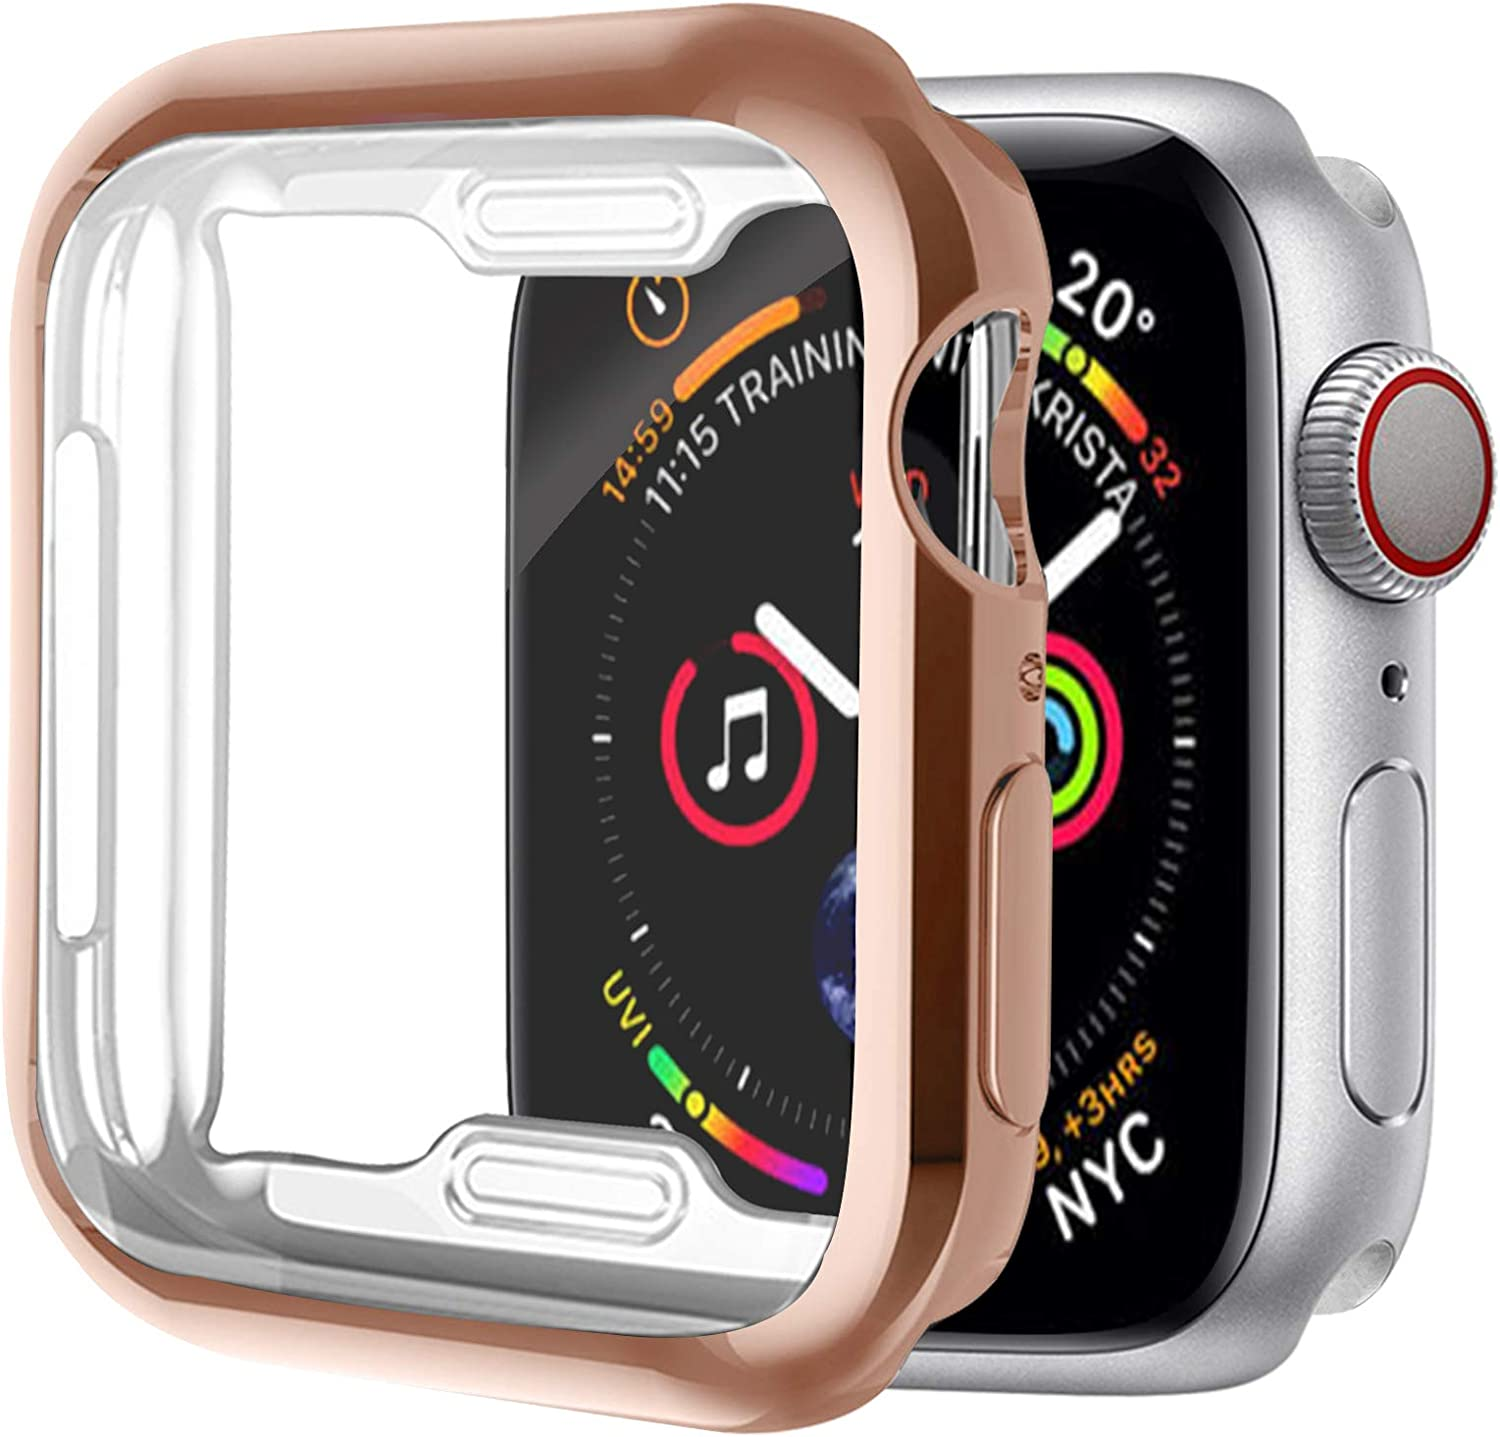 [1 Pack] ALADRS Screen Protector Case for Apple Watch 44mm, Full Protective HD Ultra-Thin Cover Compatible with iWatch Series 4 Series 5 Series 6 SE Bumper Case, Rose Gold